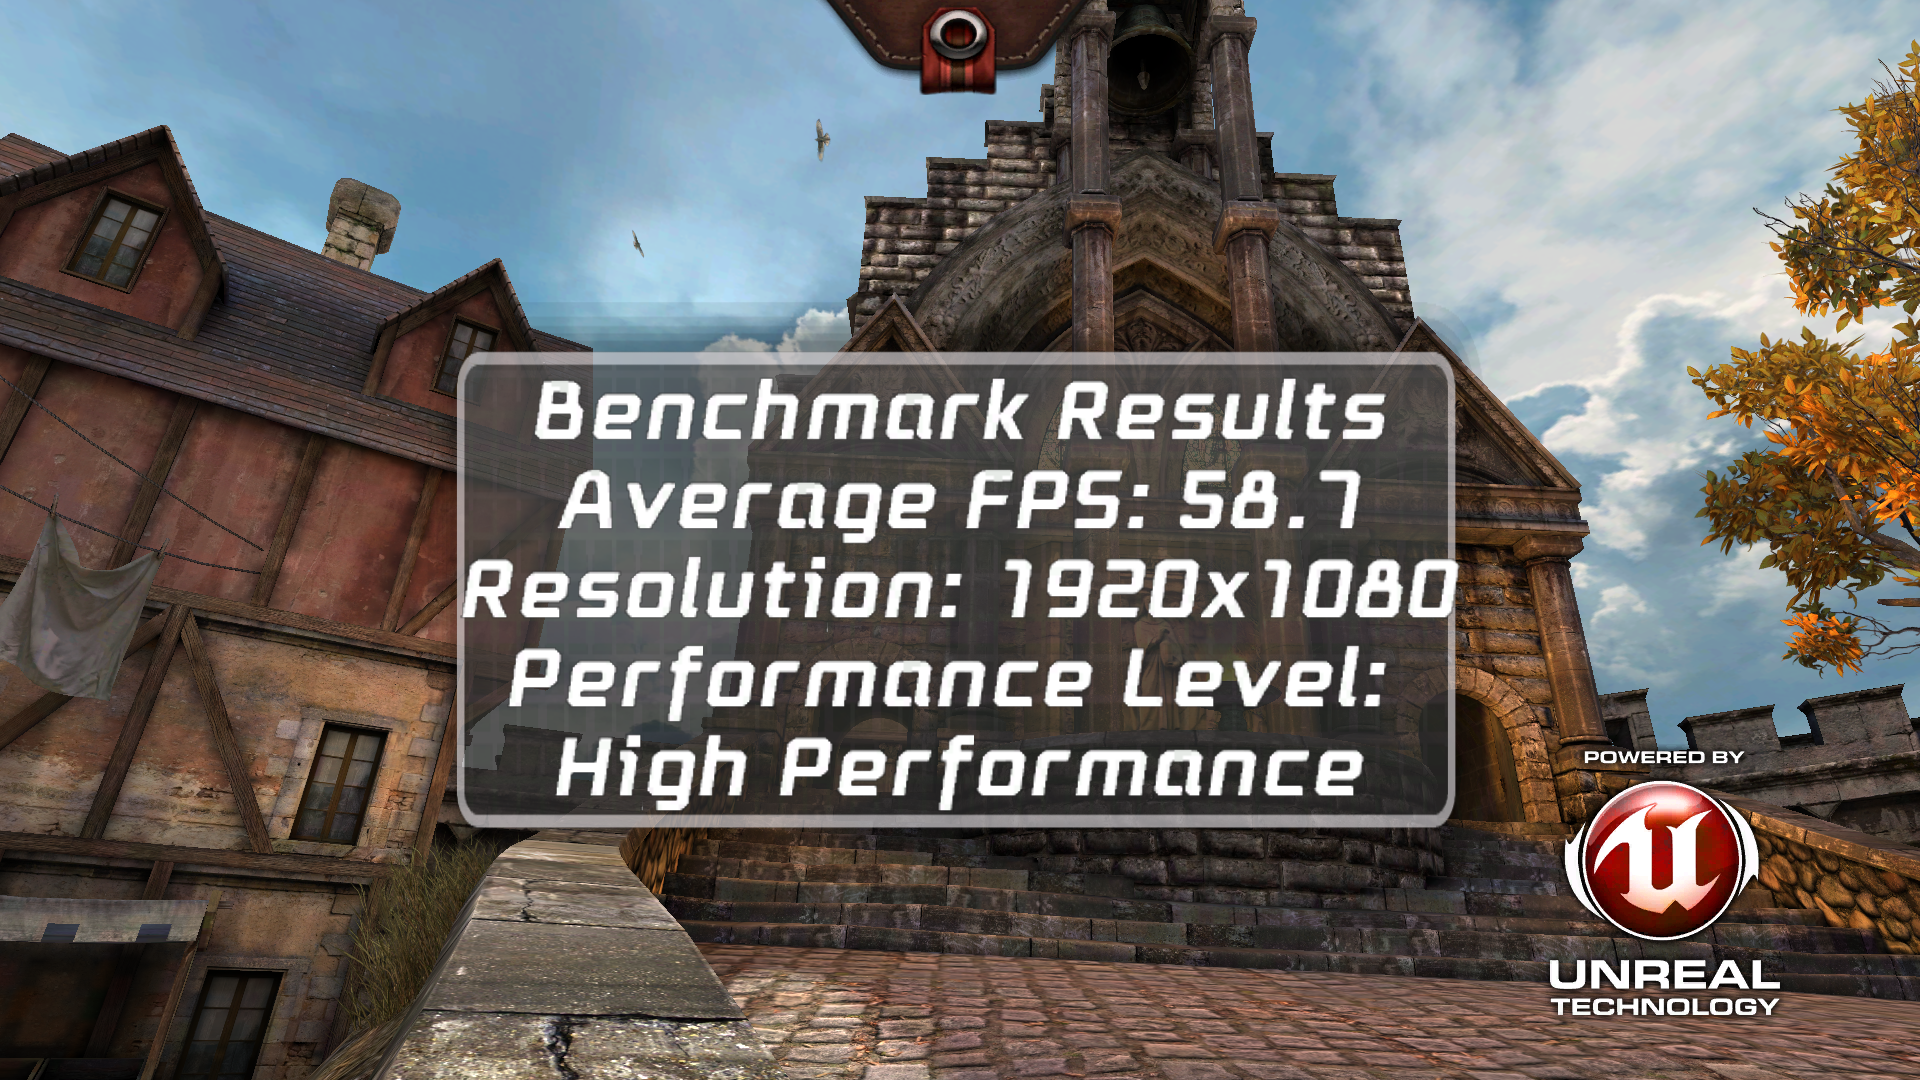 Samsung Galaxy S4 Test Benchmarks 8